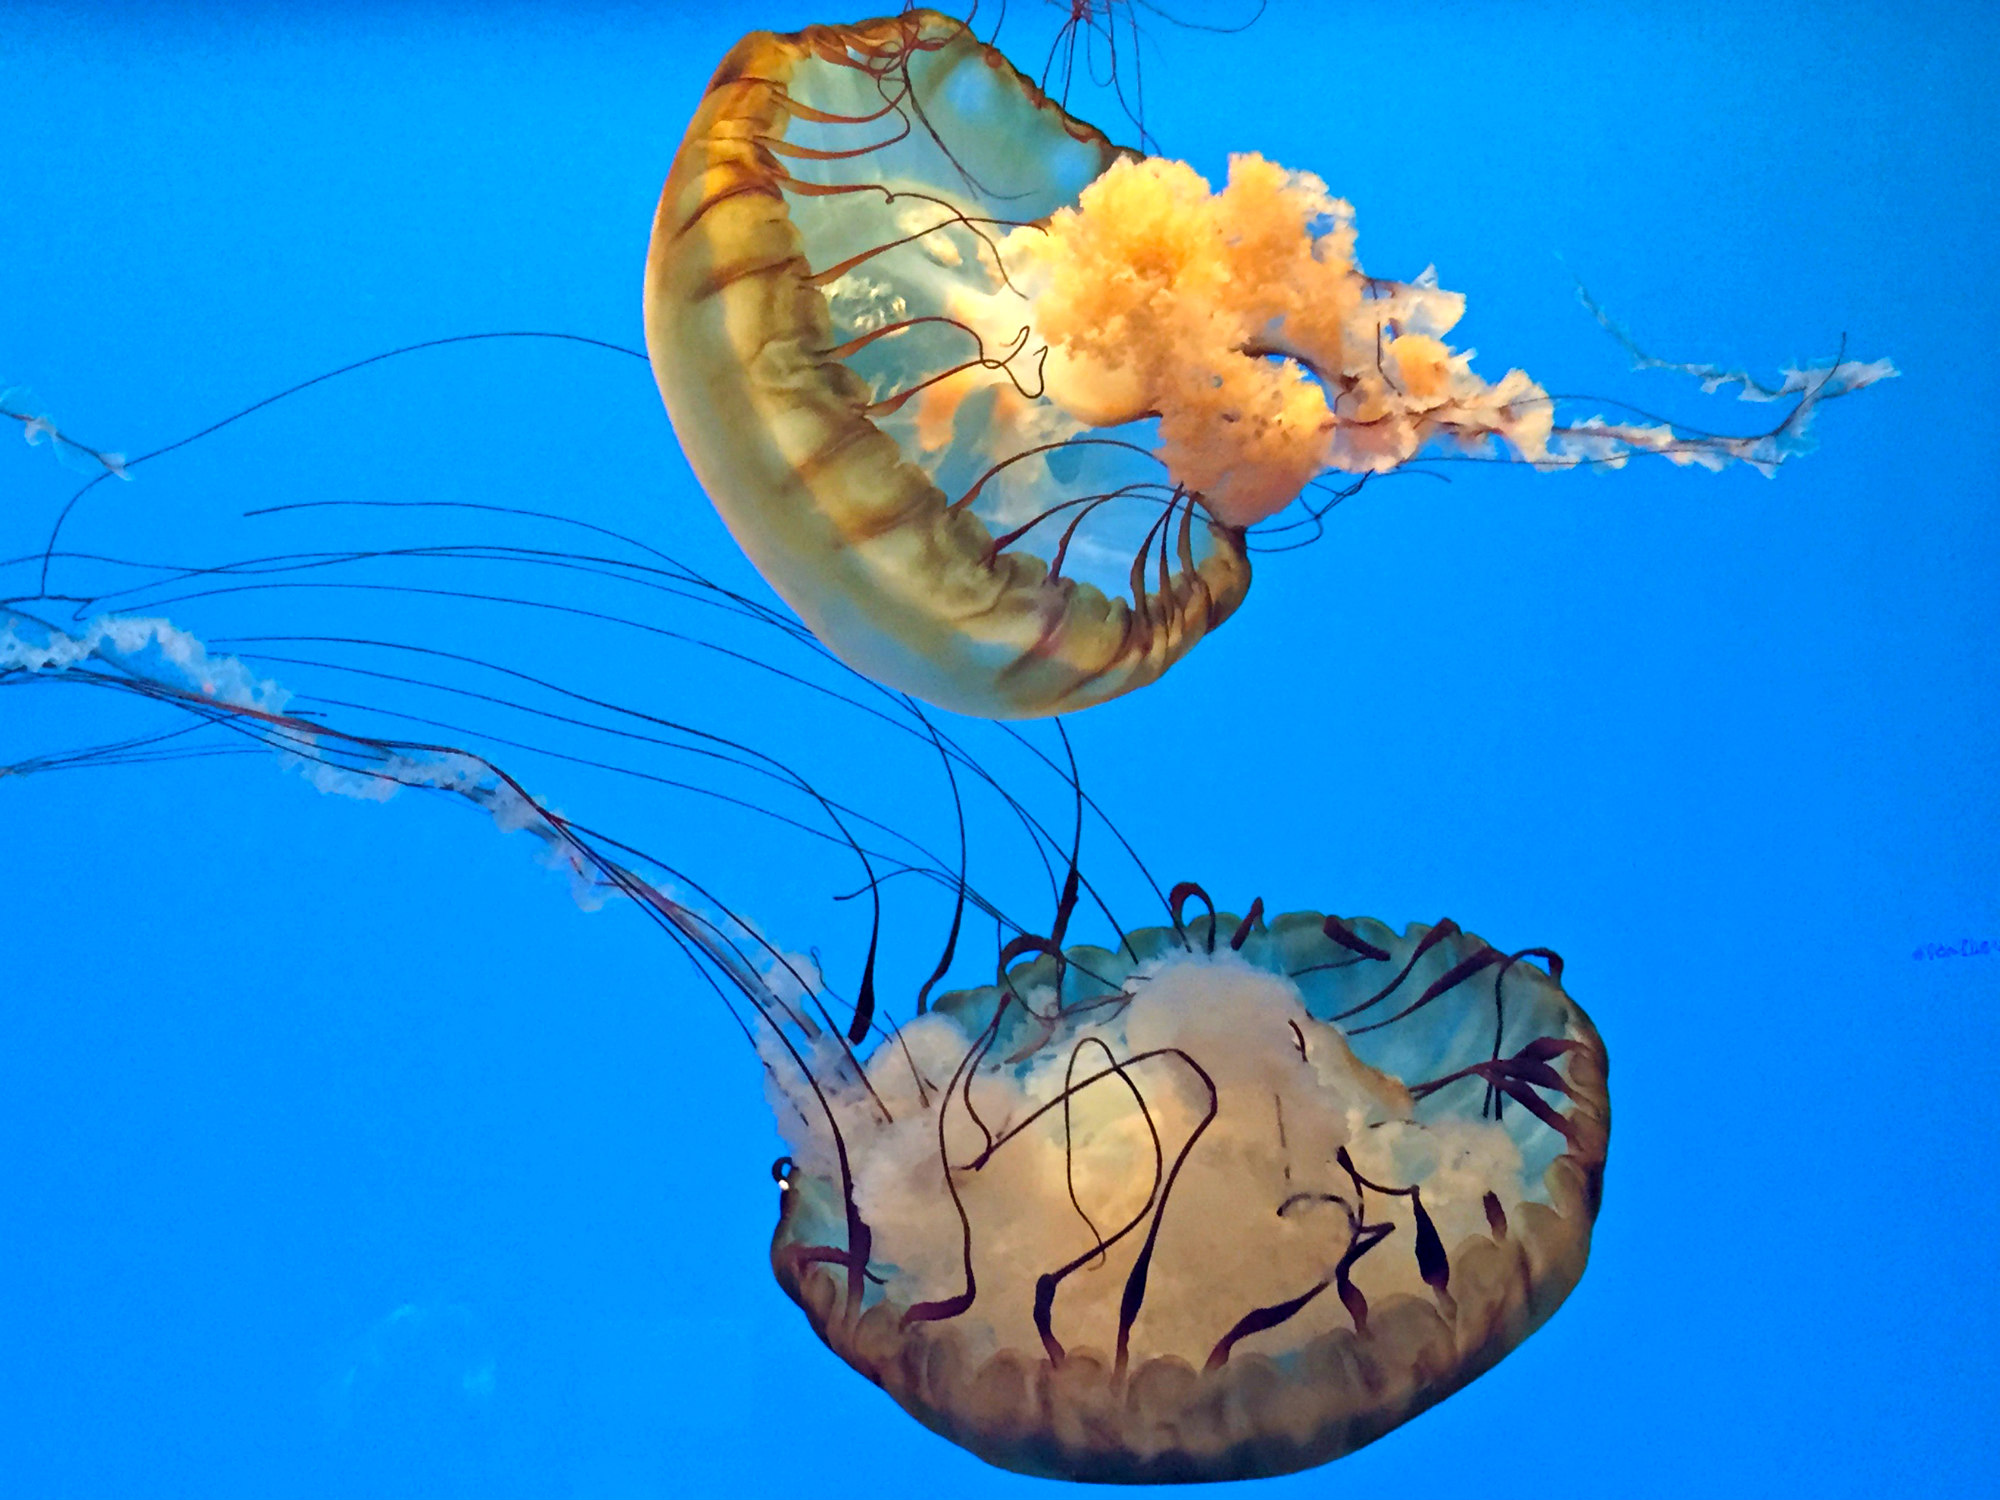 Pair of yellow-hued box jellyfish swim in an aquarium.